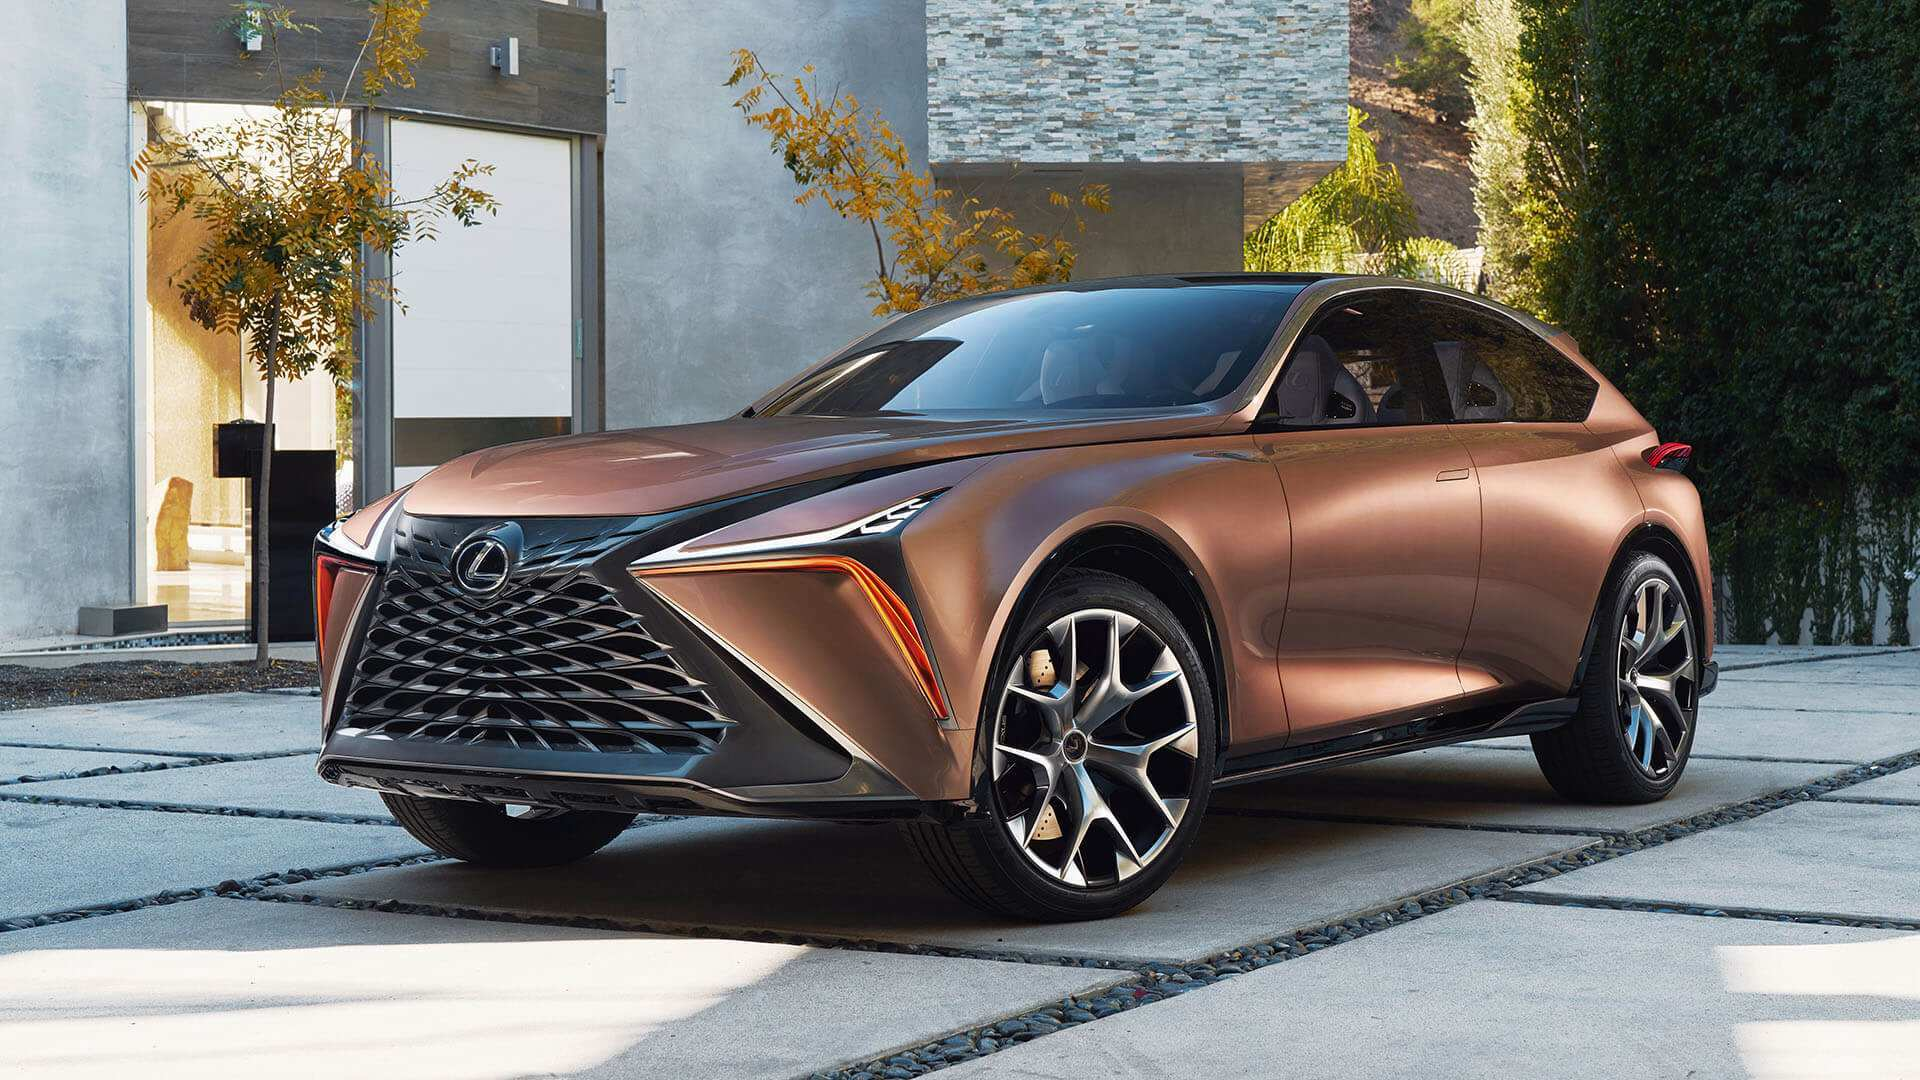 26 All New Lexus Lf 1 Limitless 2020 Research New by Lexus Lf 1 Limitless 2020